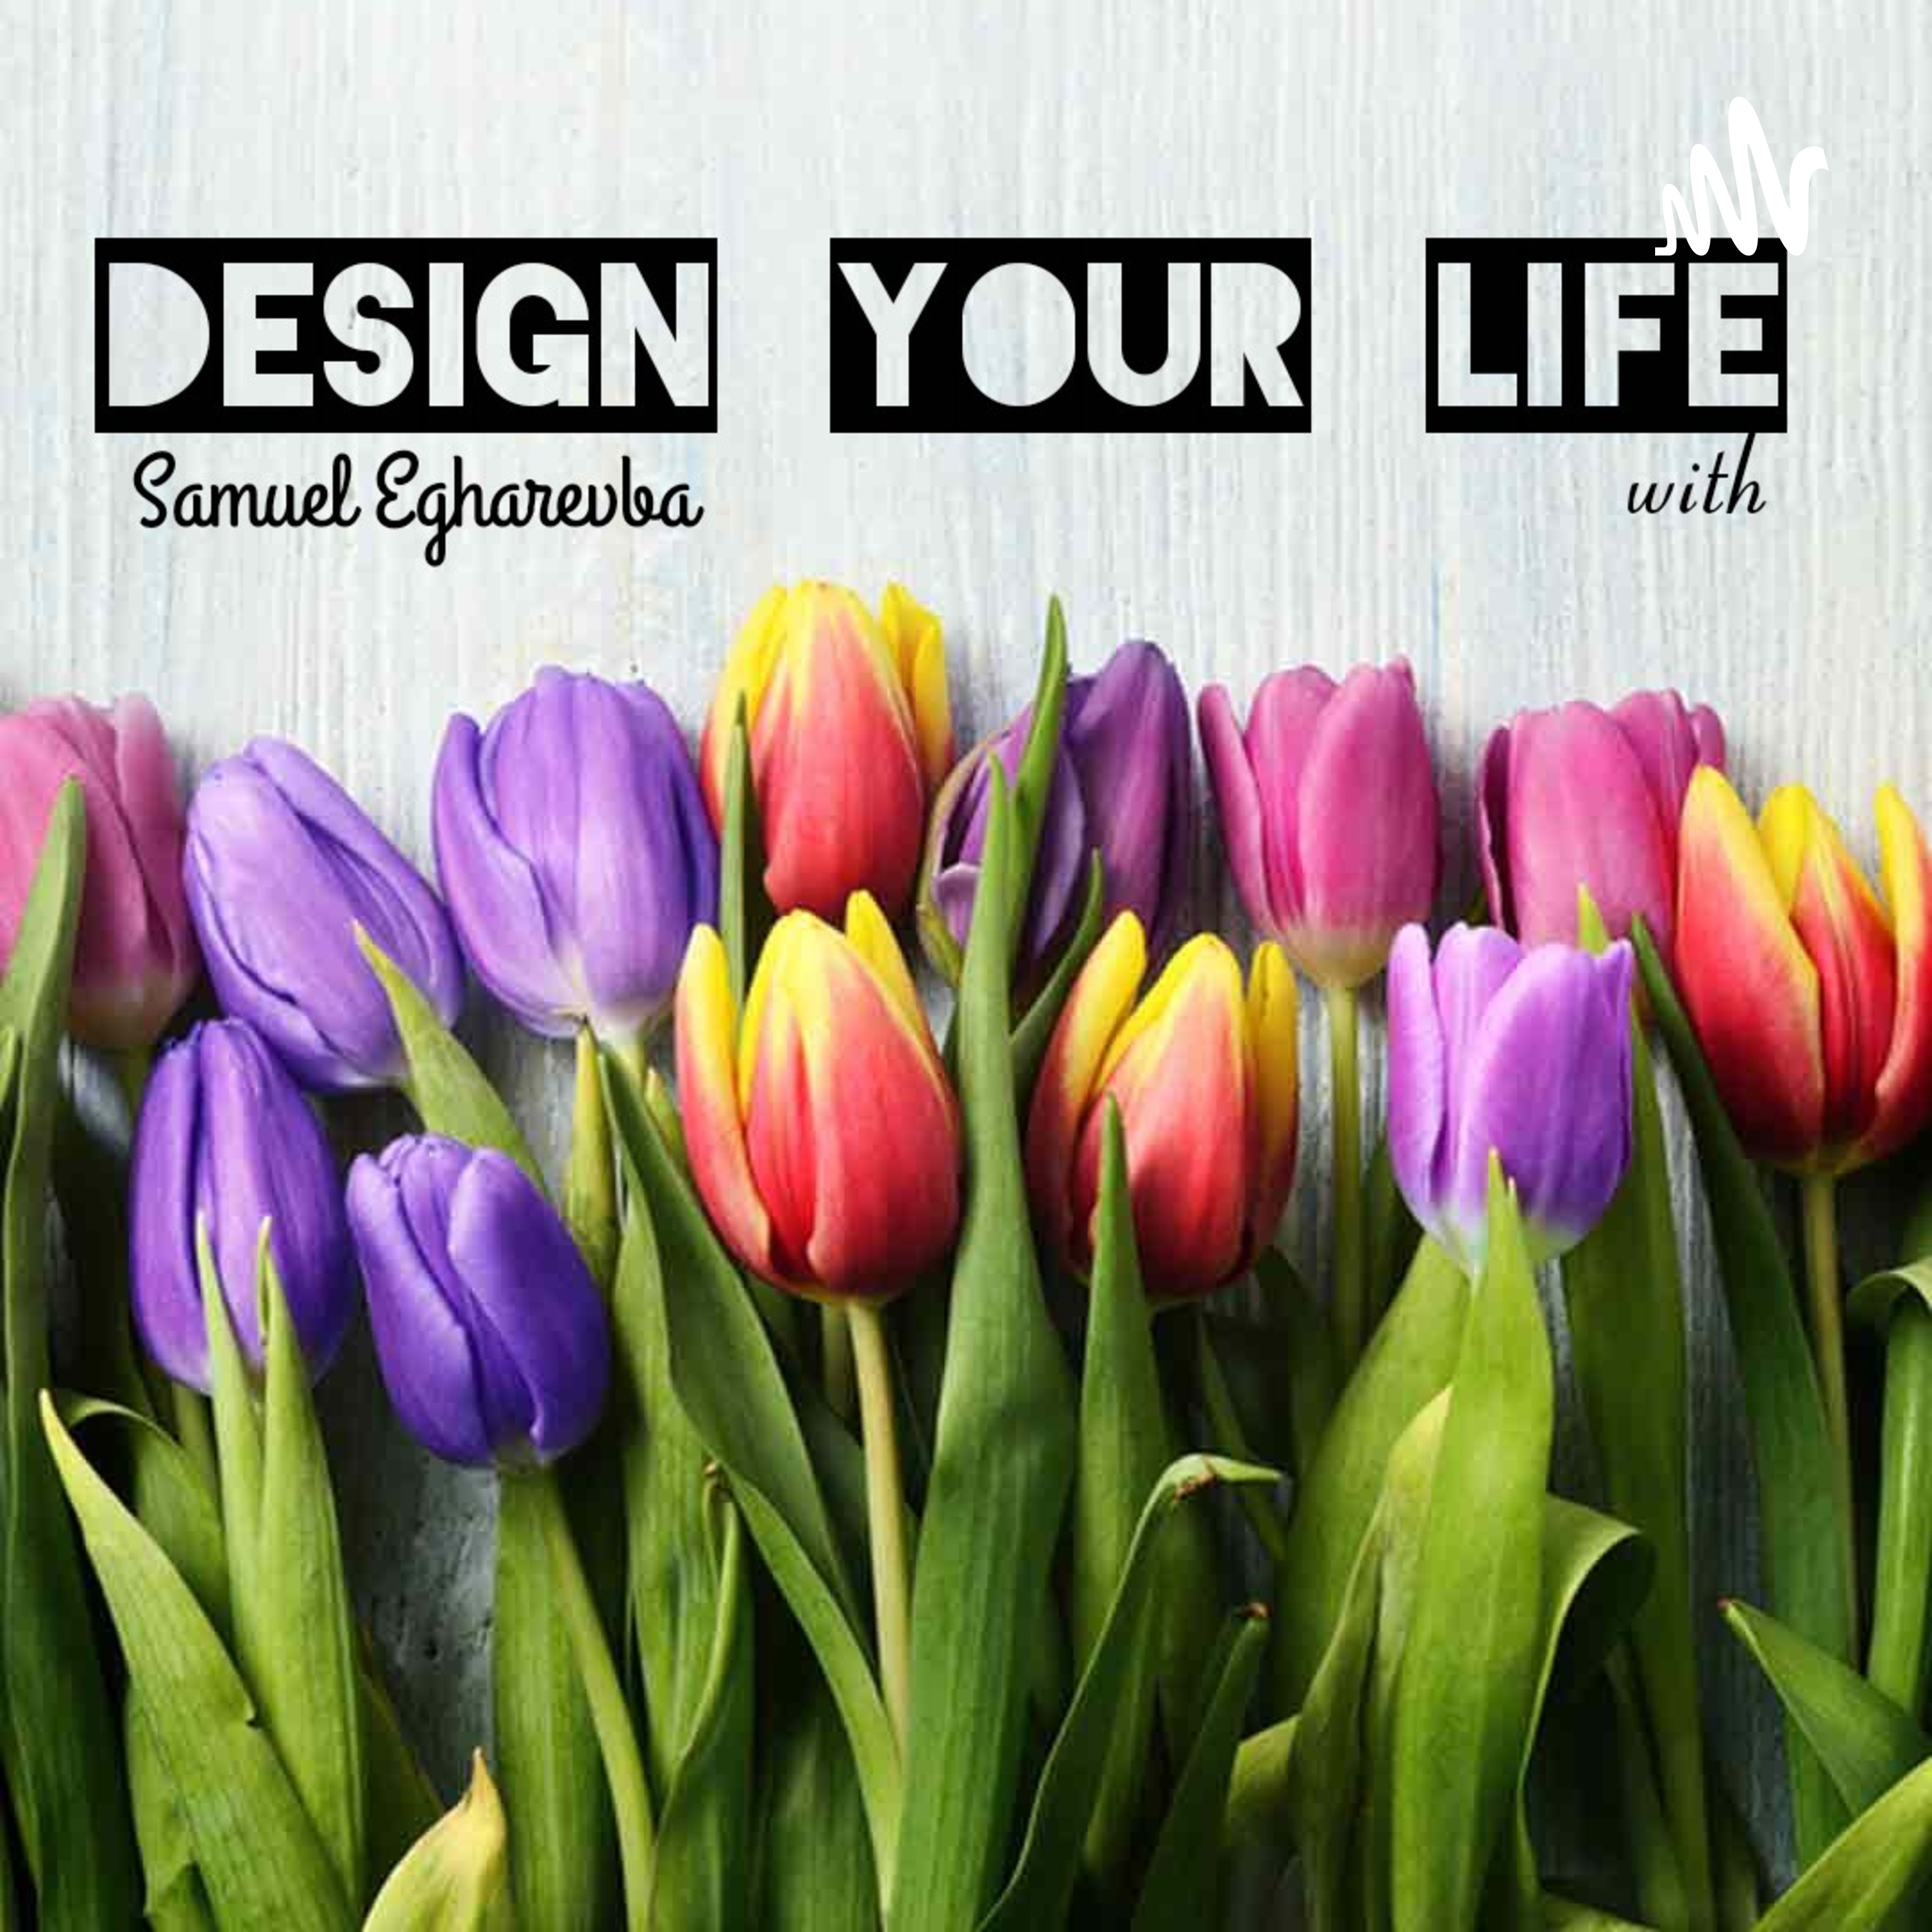 Design Your Life.